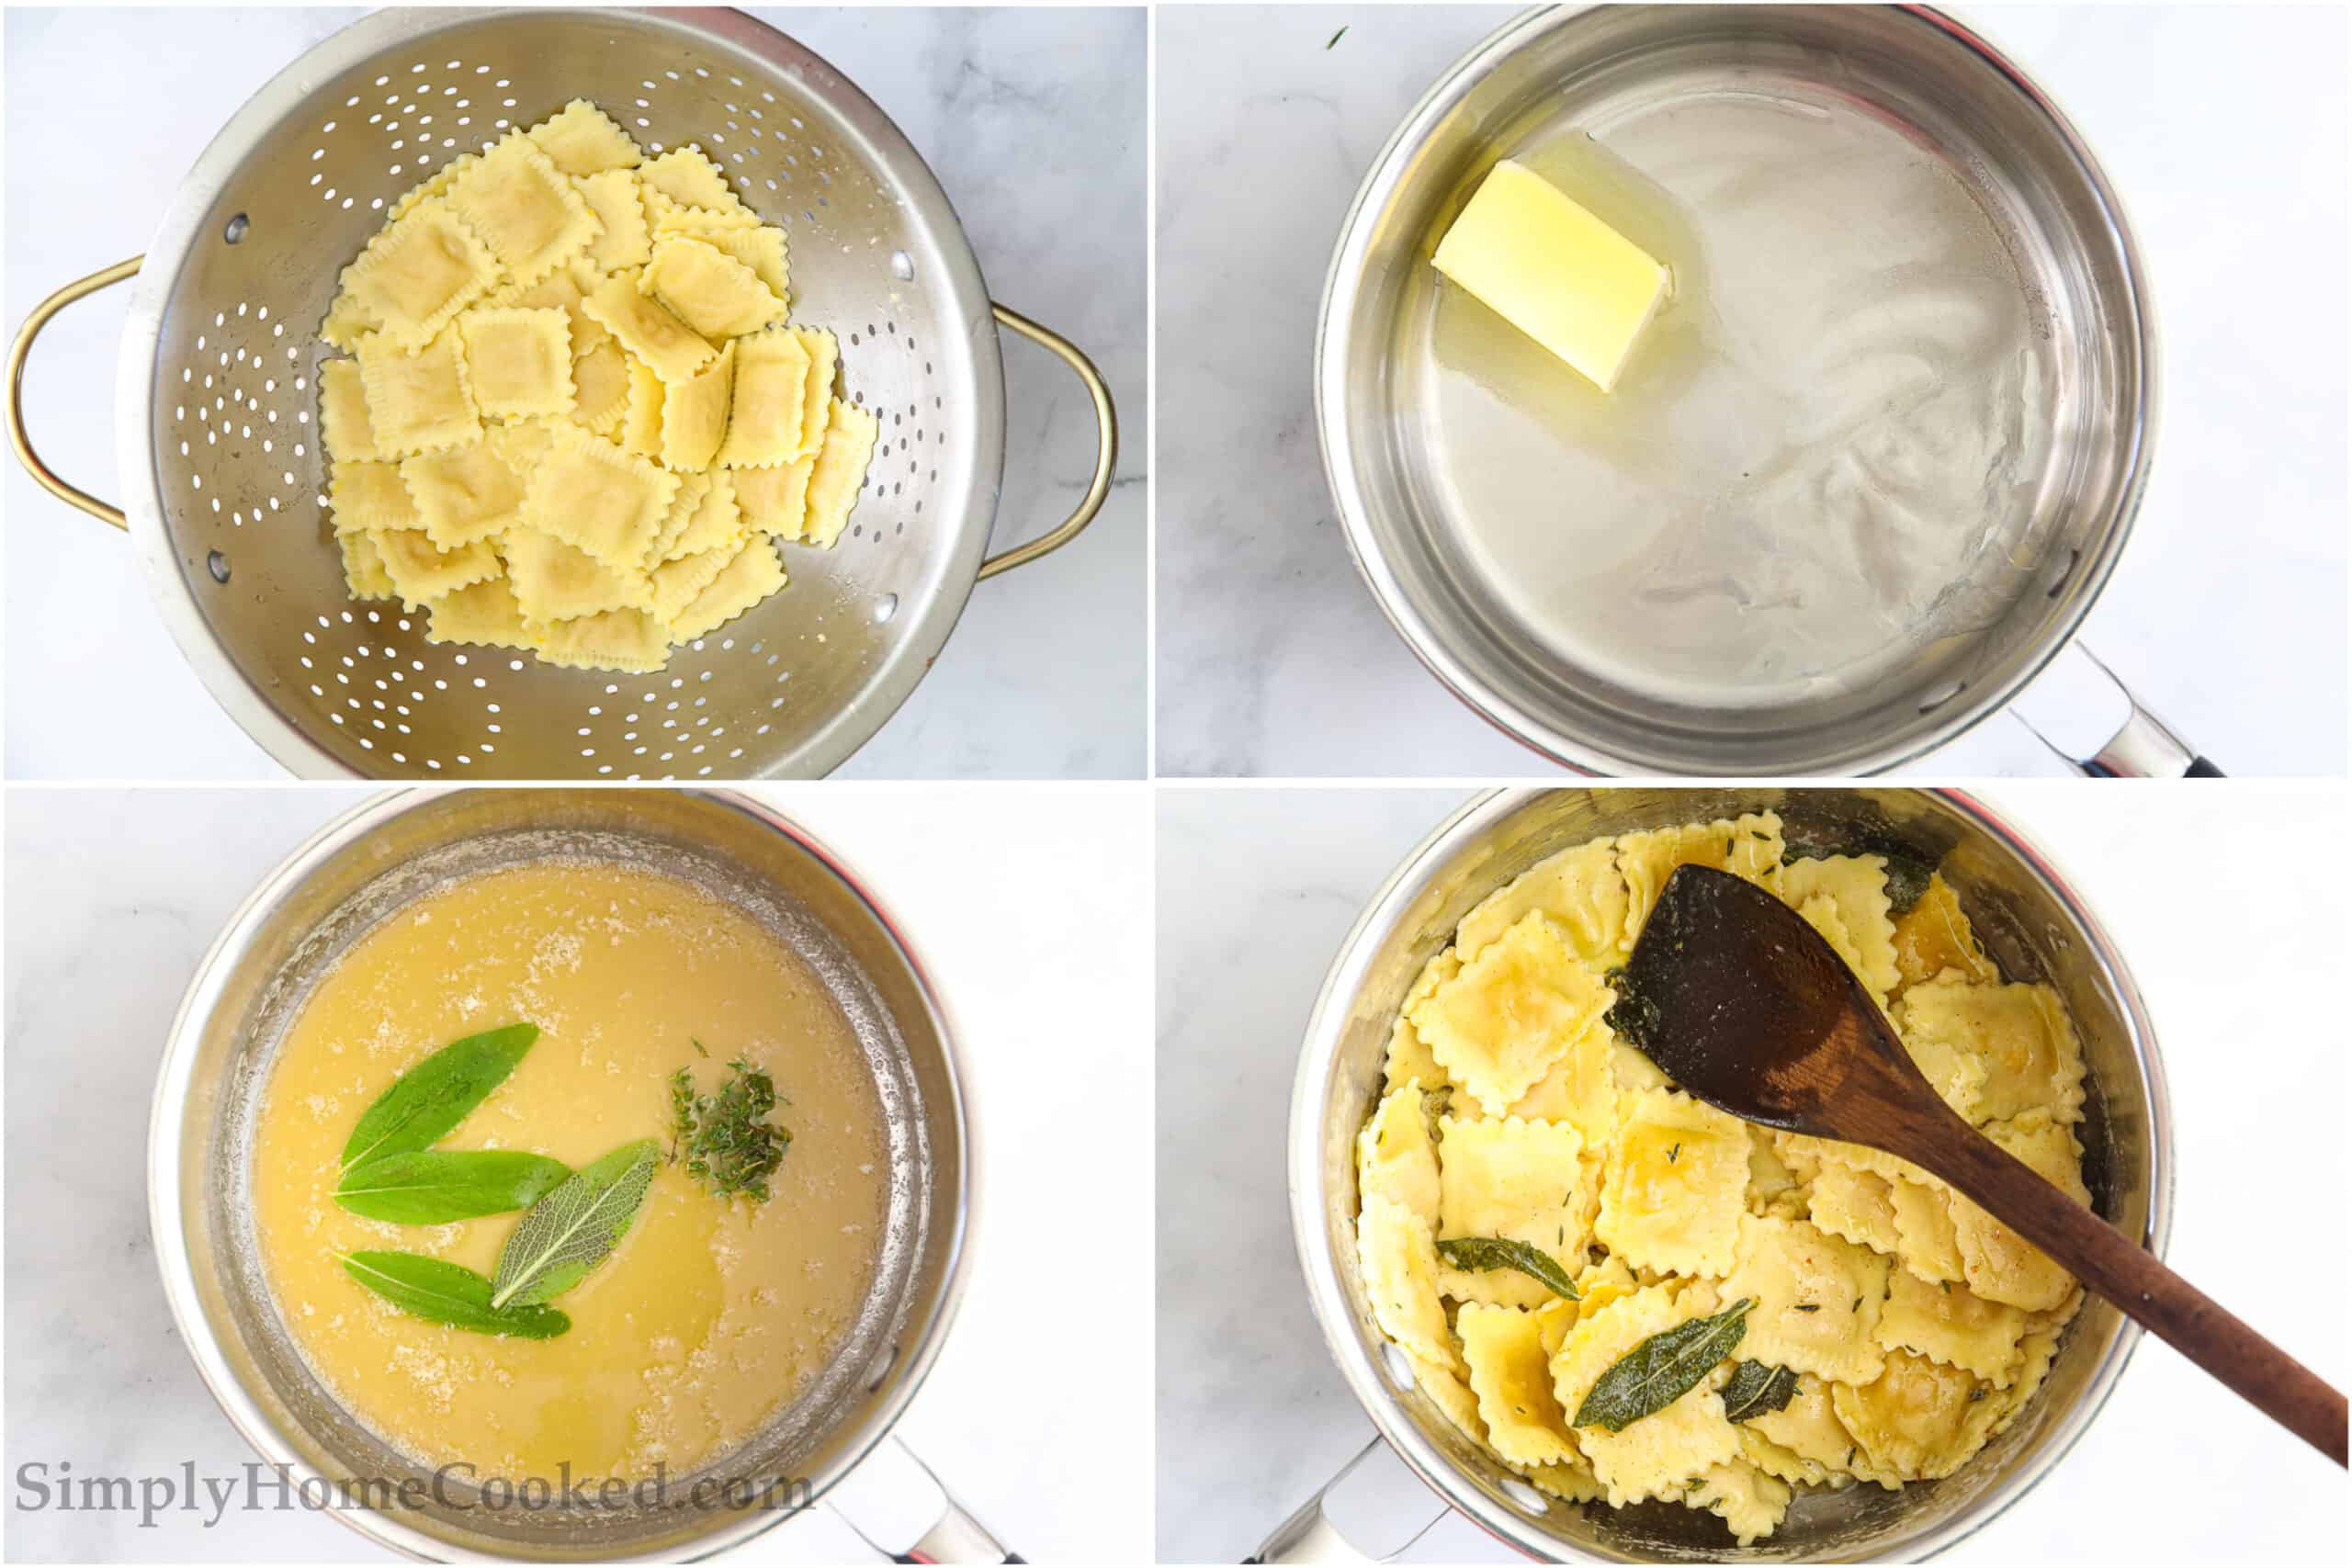 Steps to make Butternut Squash Ravioli, including cooking and draining the ravioli, browning the butter, then adding the sage and thyme, and stirring everything together with a wooden spoon.